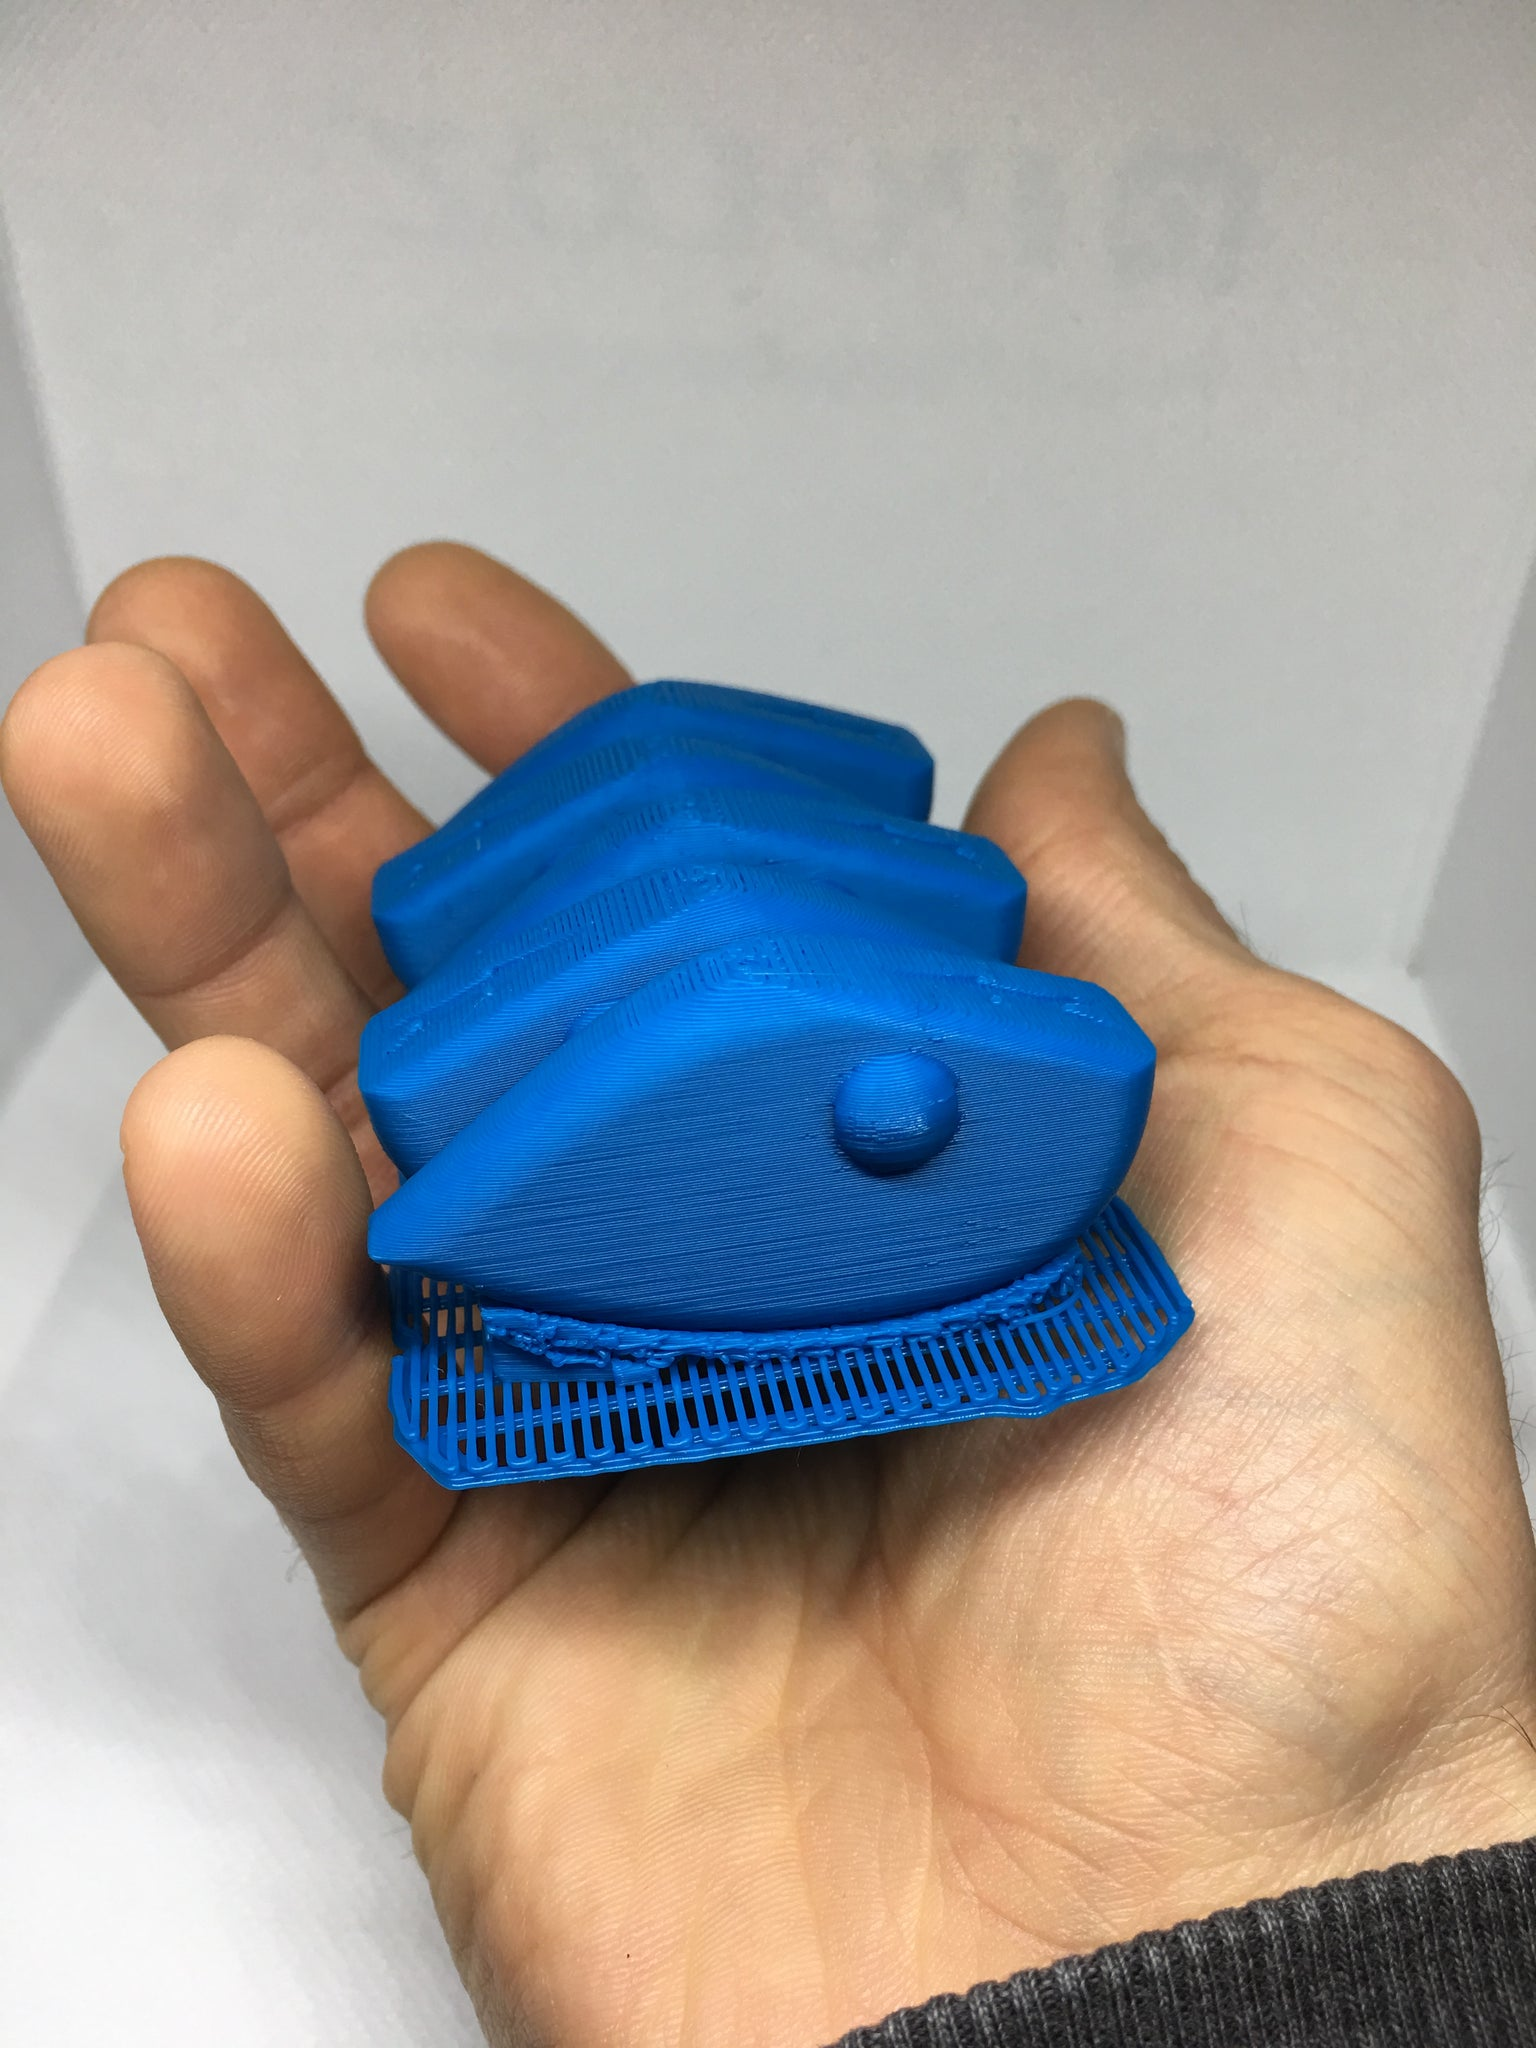 LIPLESS CRANKBAIT 2 INCH BLANK 3D PRINTED FRESH OFF THE PRINTER (BLUE)